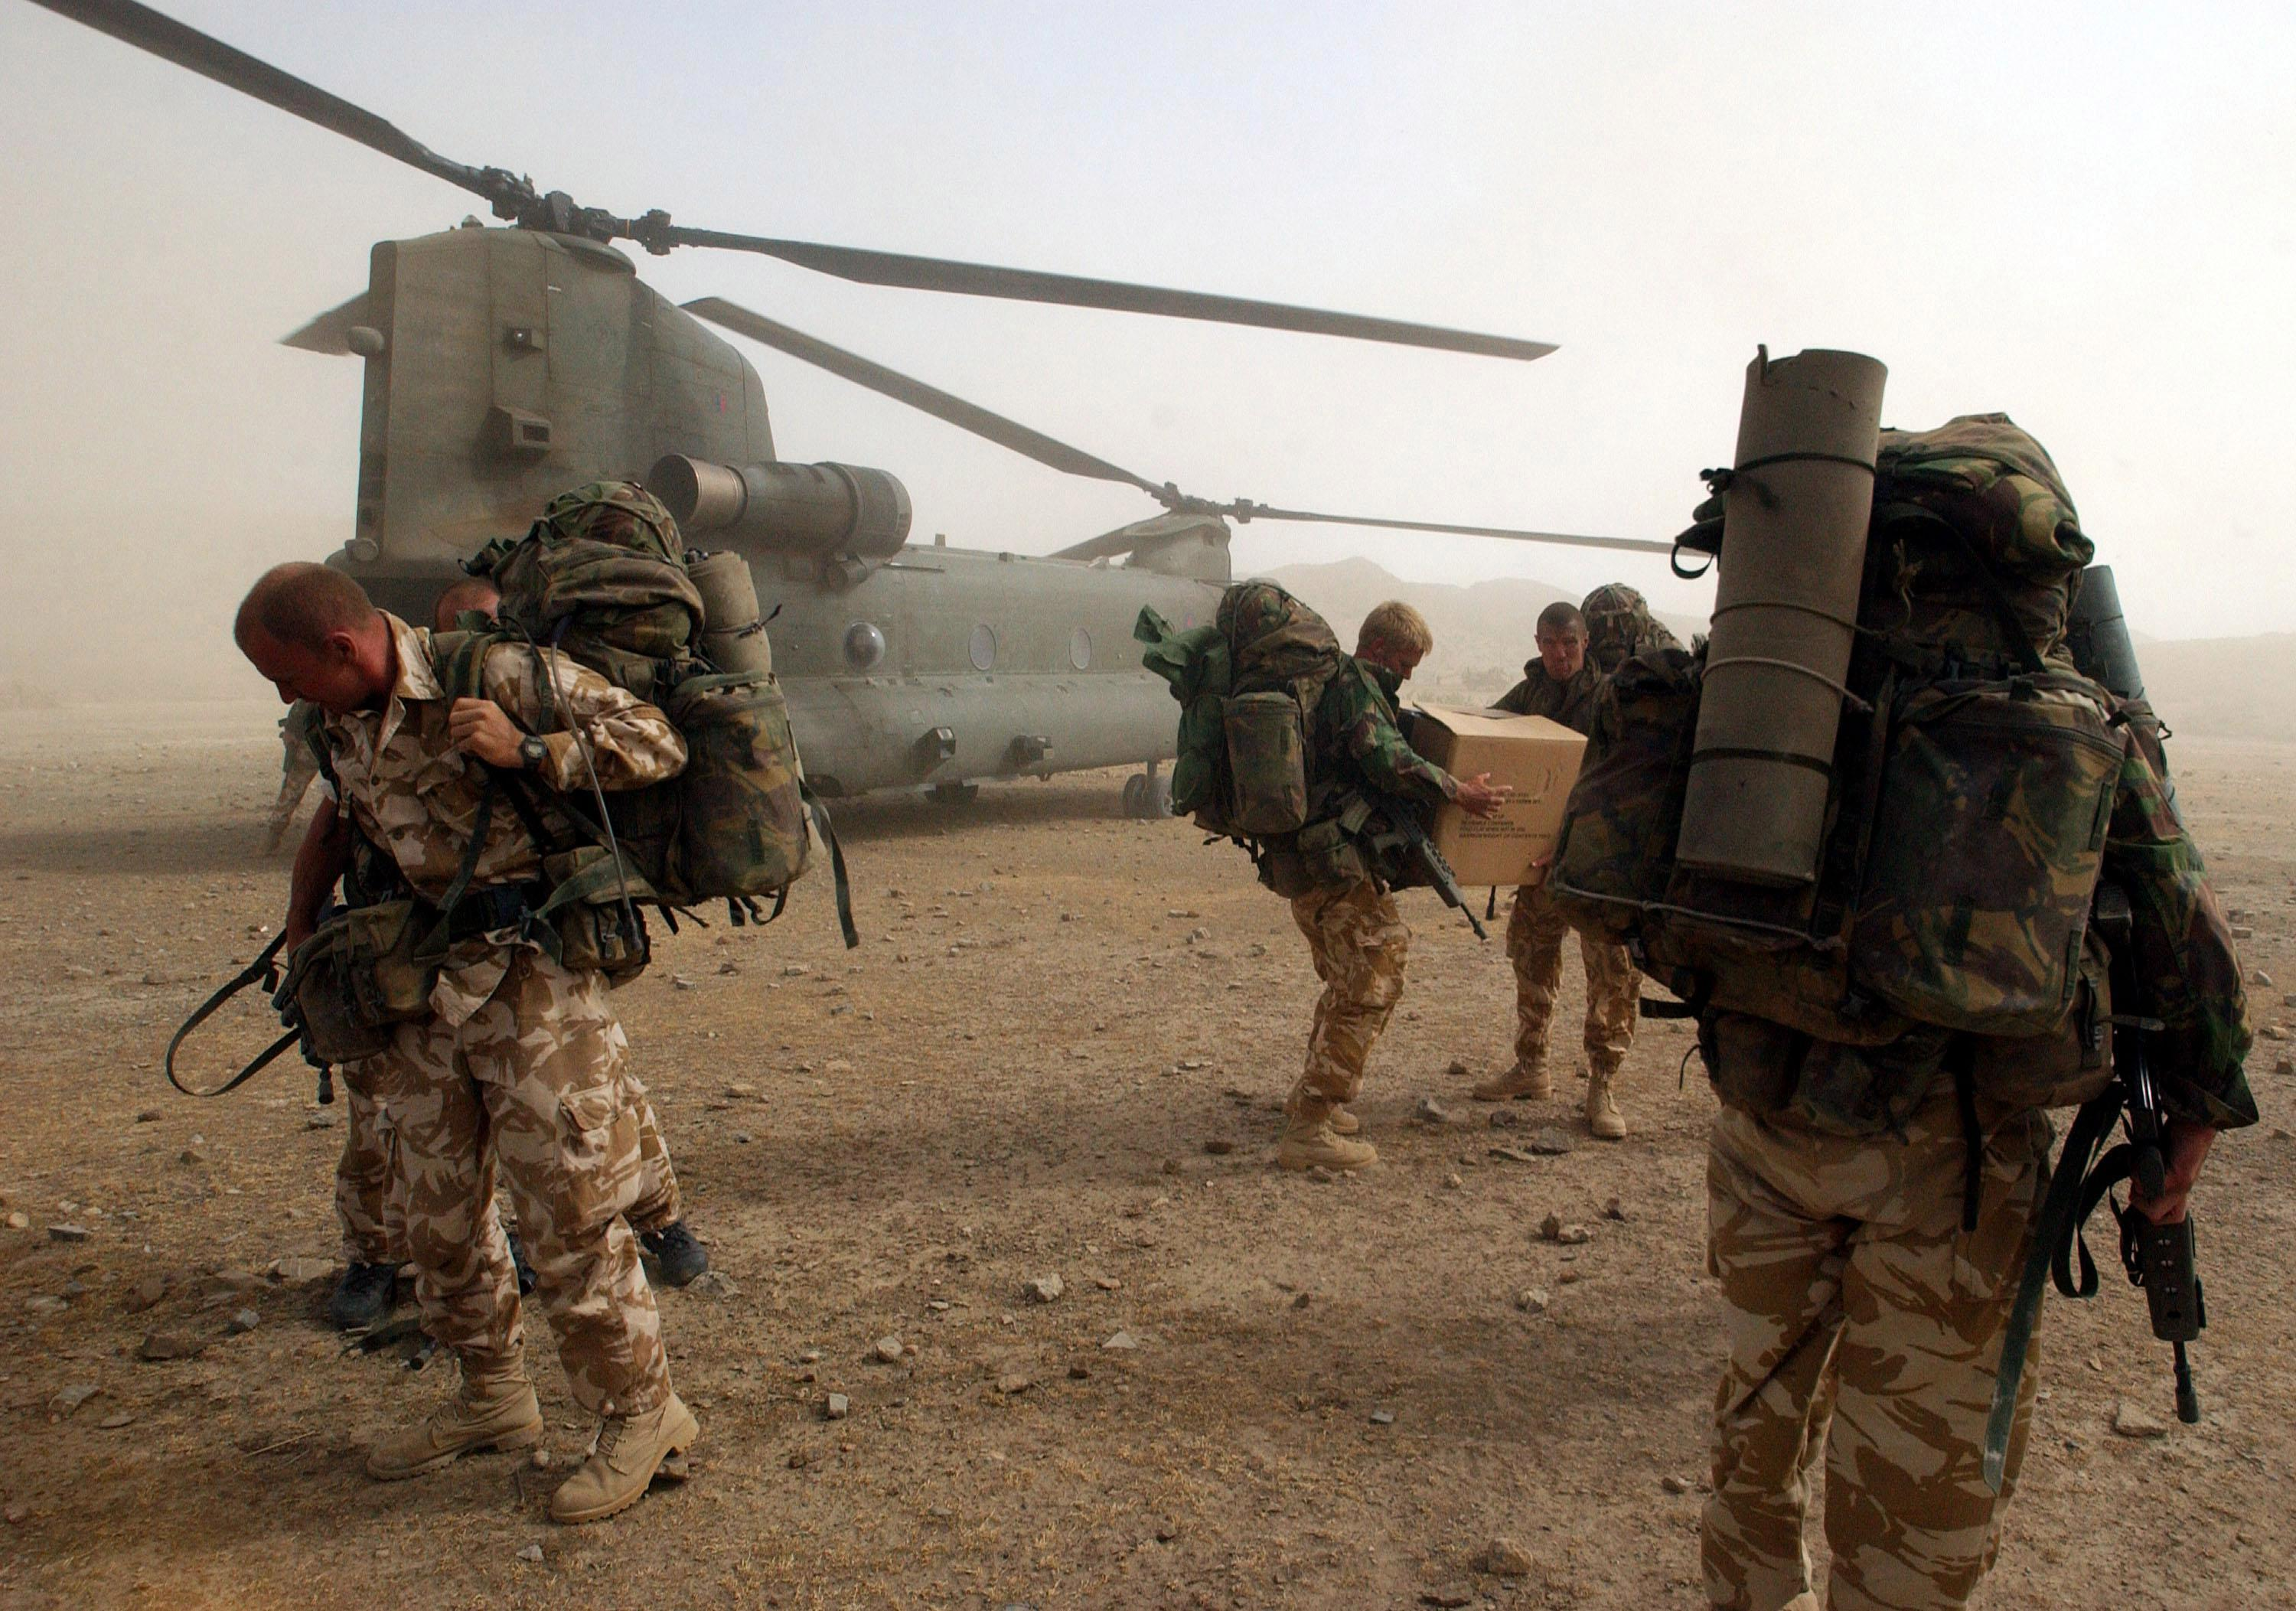 NHS launches recruitment drive targeting former members of the armed forces